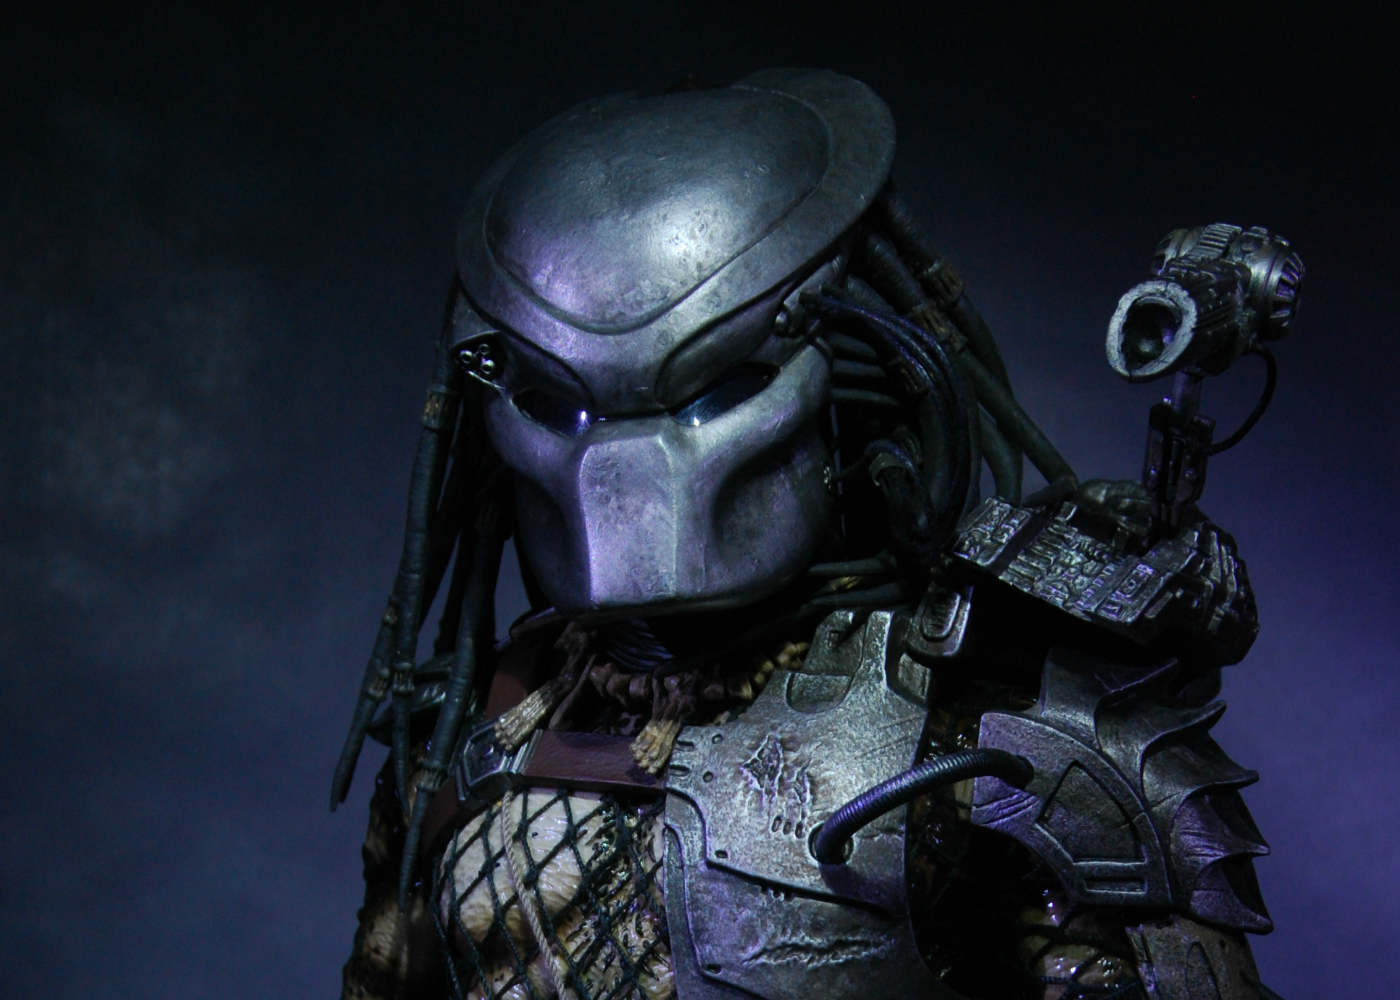 New Image from The Predator Suggests a Human-Hunter Alliance